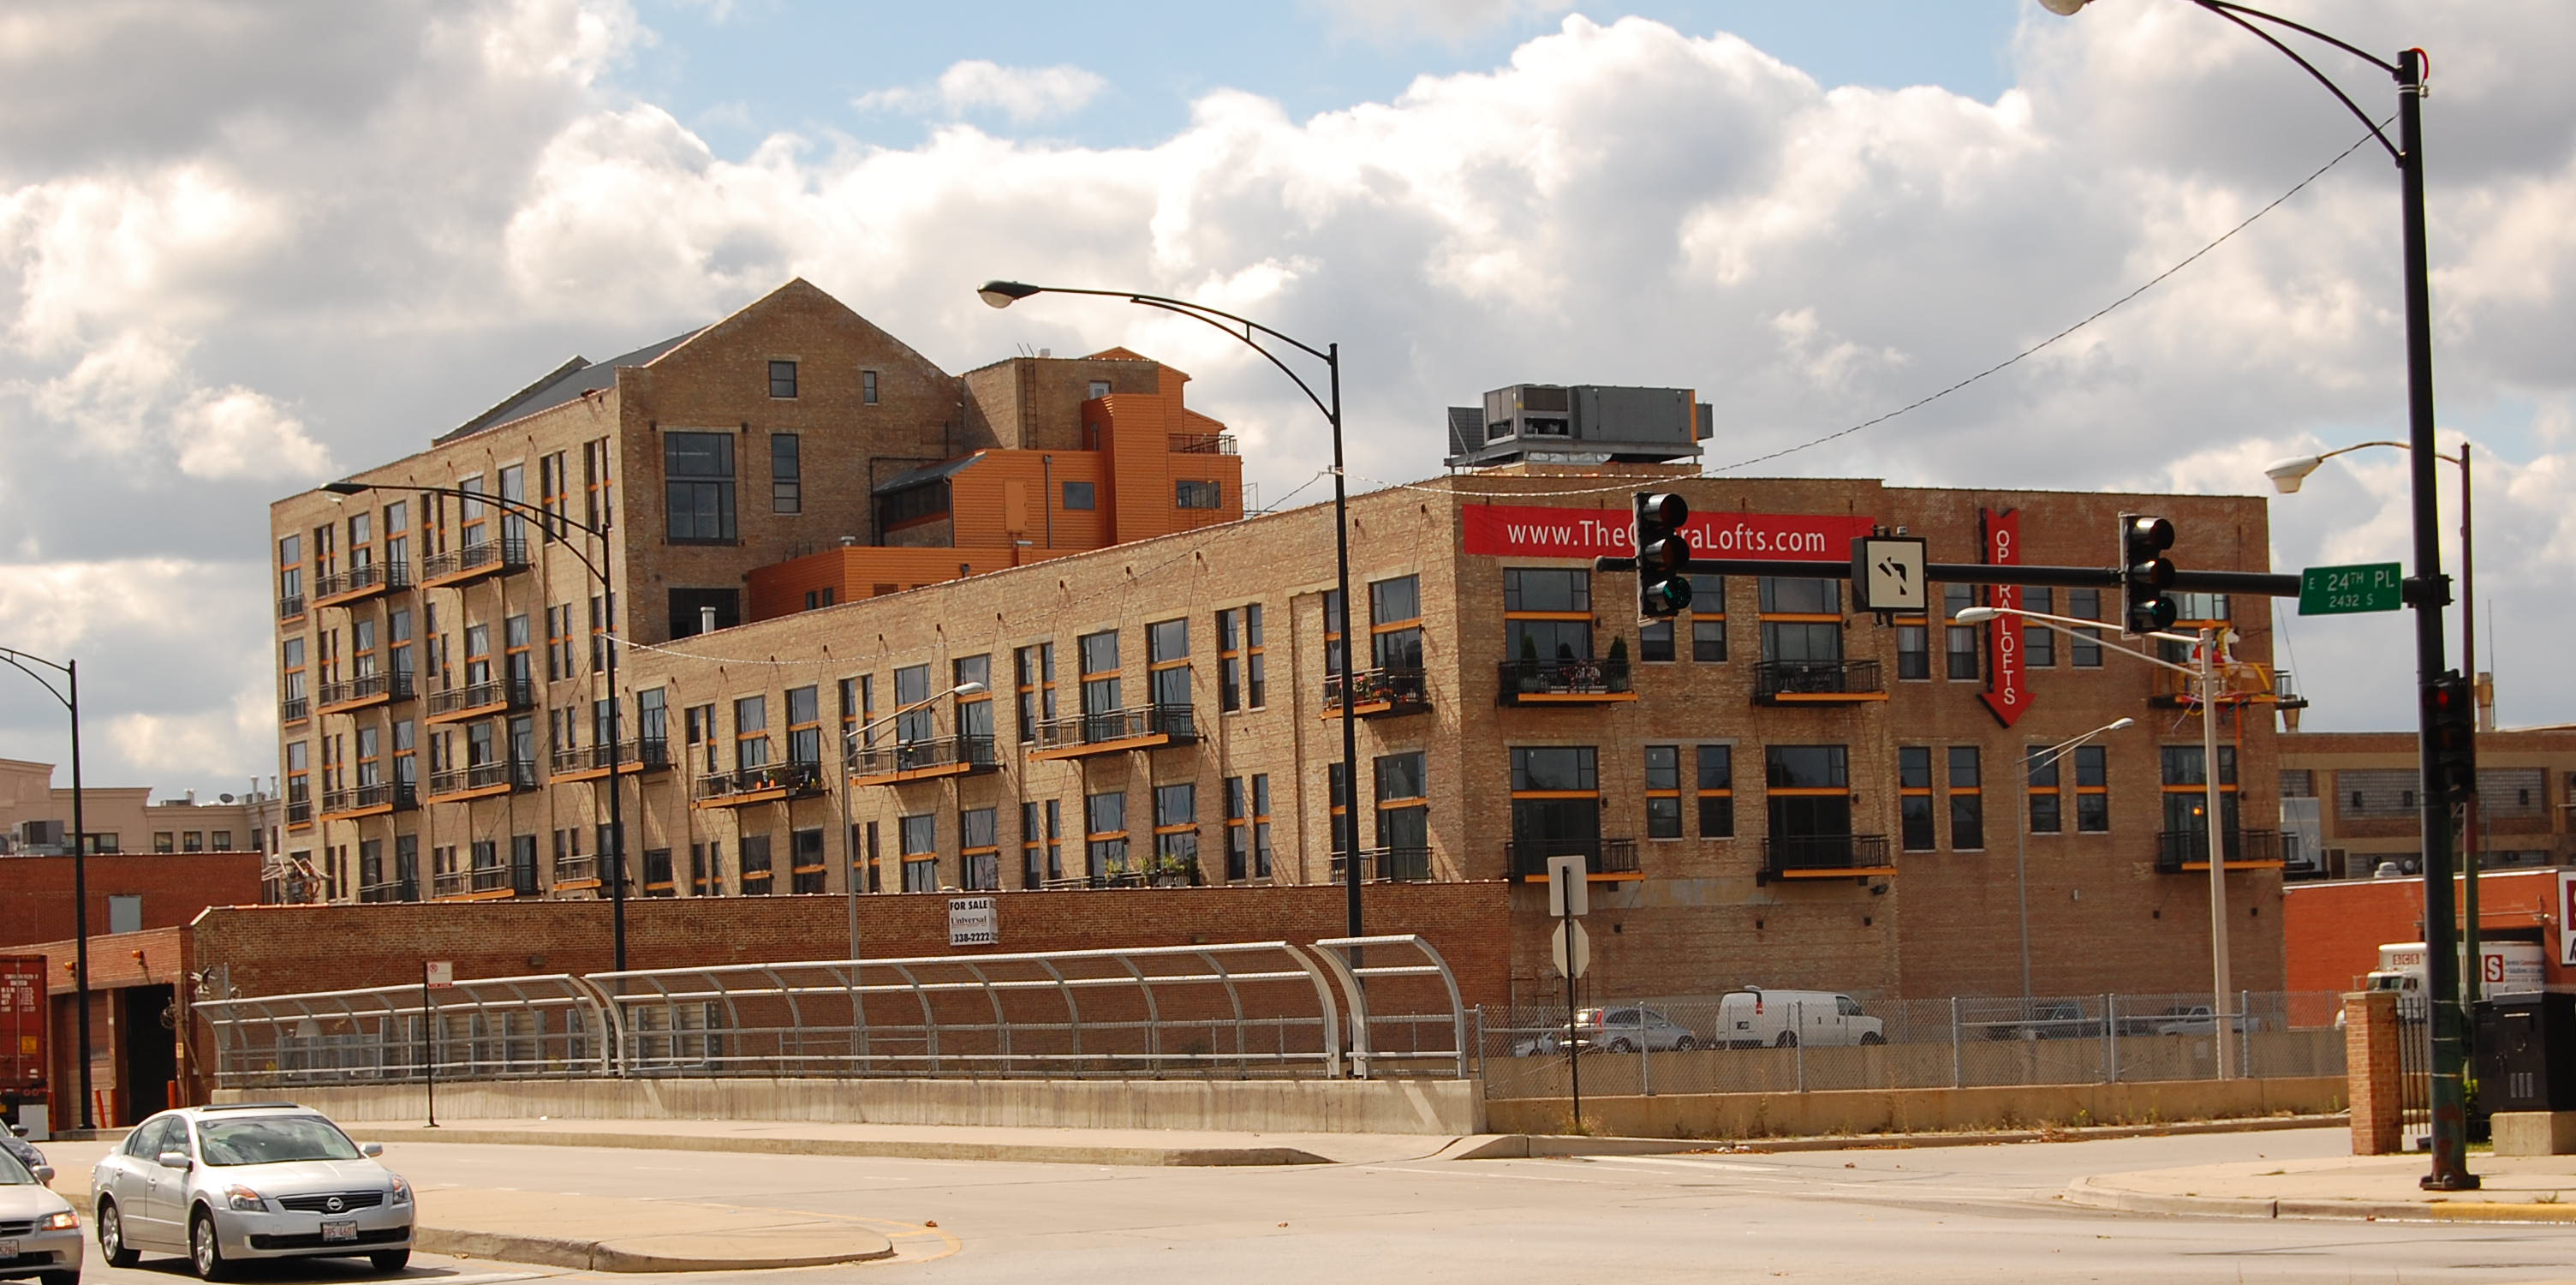 About one-third of Opera Lofts sold